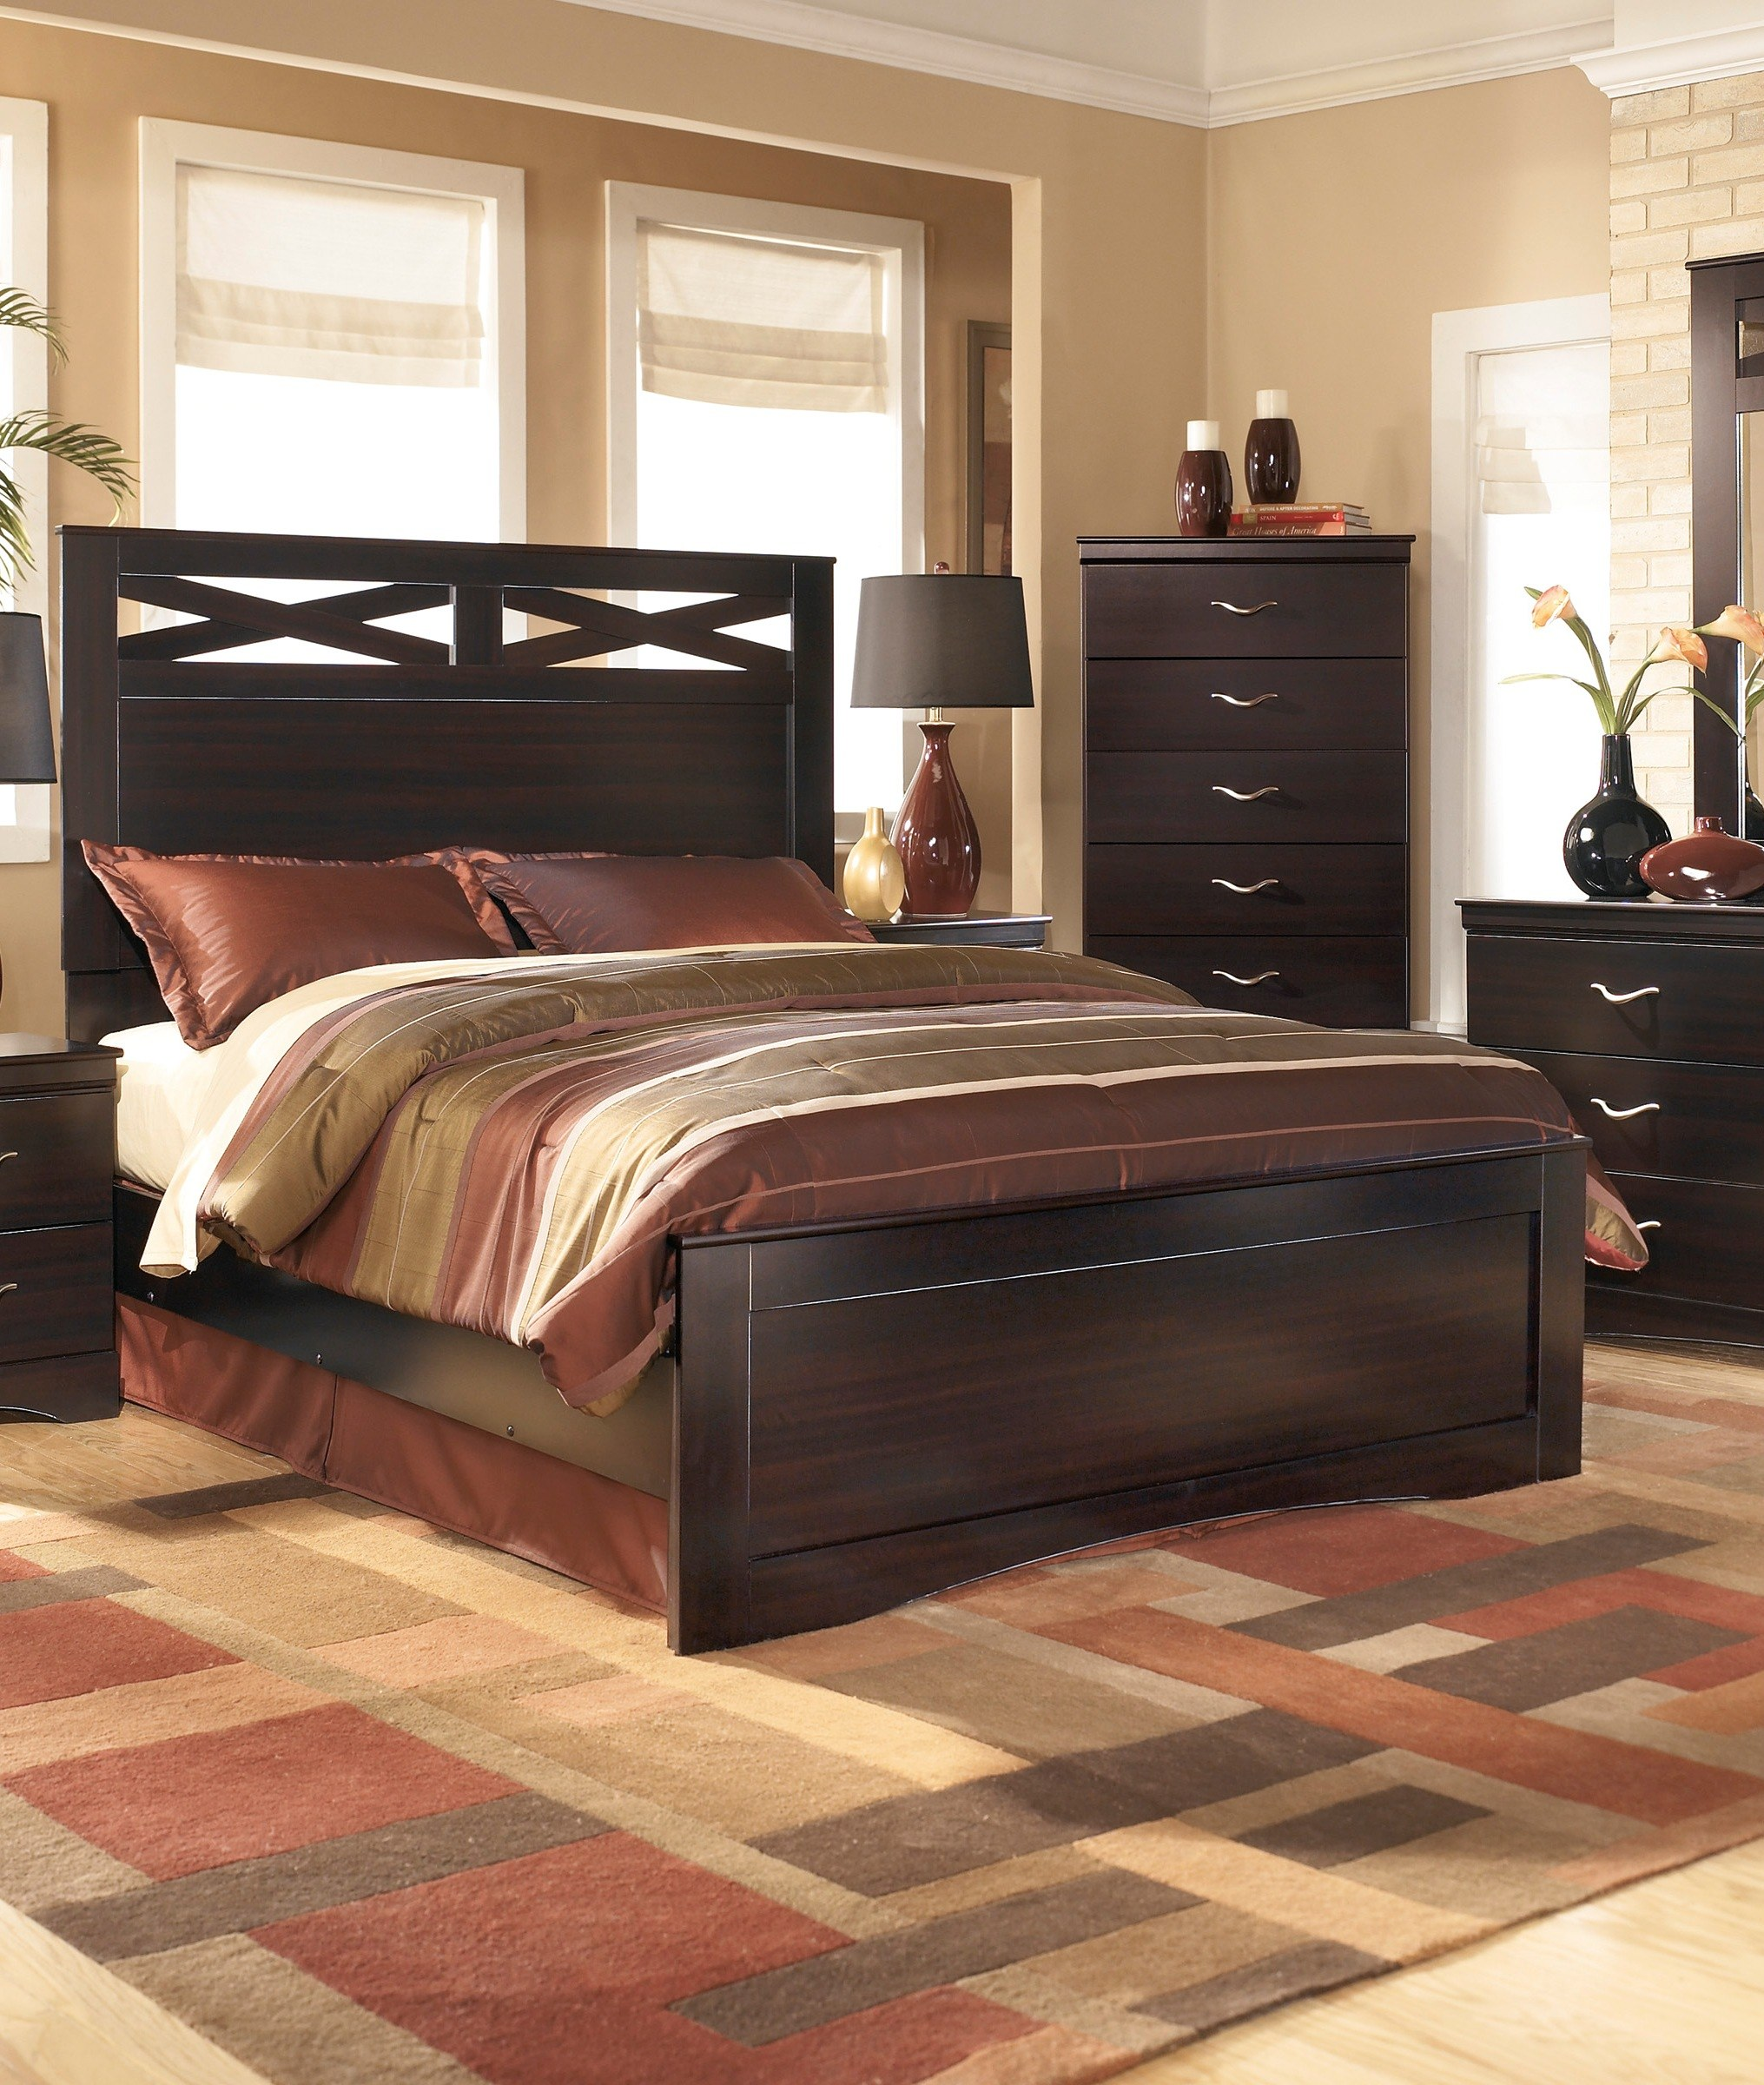 Signature Design By Ashley X Cess Queen Panel Bed B117 57 54 96